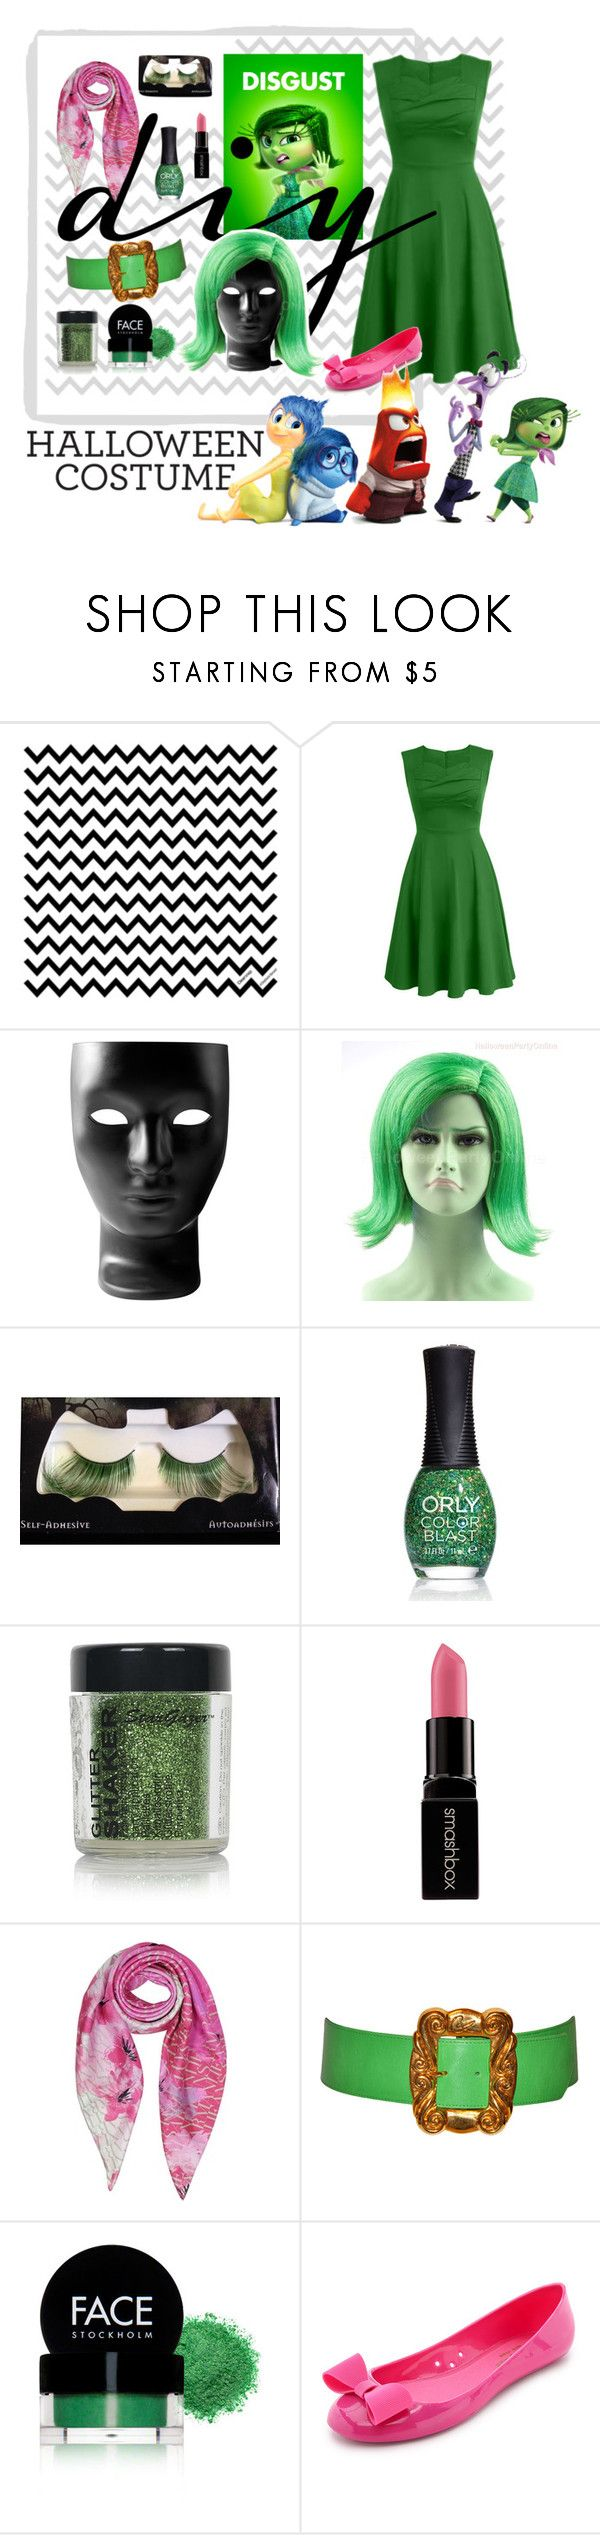 """""""DIY Halloween Costume"""" by jane-pez ❤ liked on Polyvore featuring Driade, Wet n Wild, ORLY, Topshop, Smashbox, Armani Jeans, Christian Lacroix, FACE Stockholm and Kate Spade"""